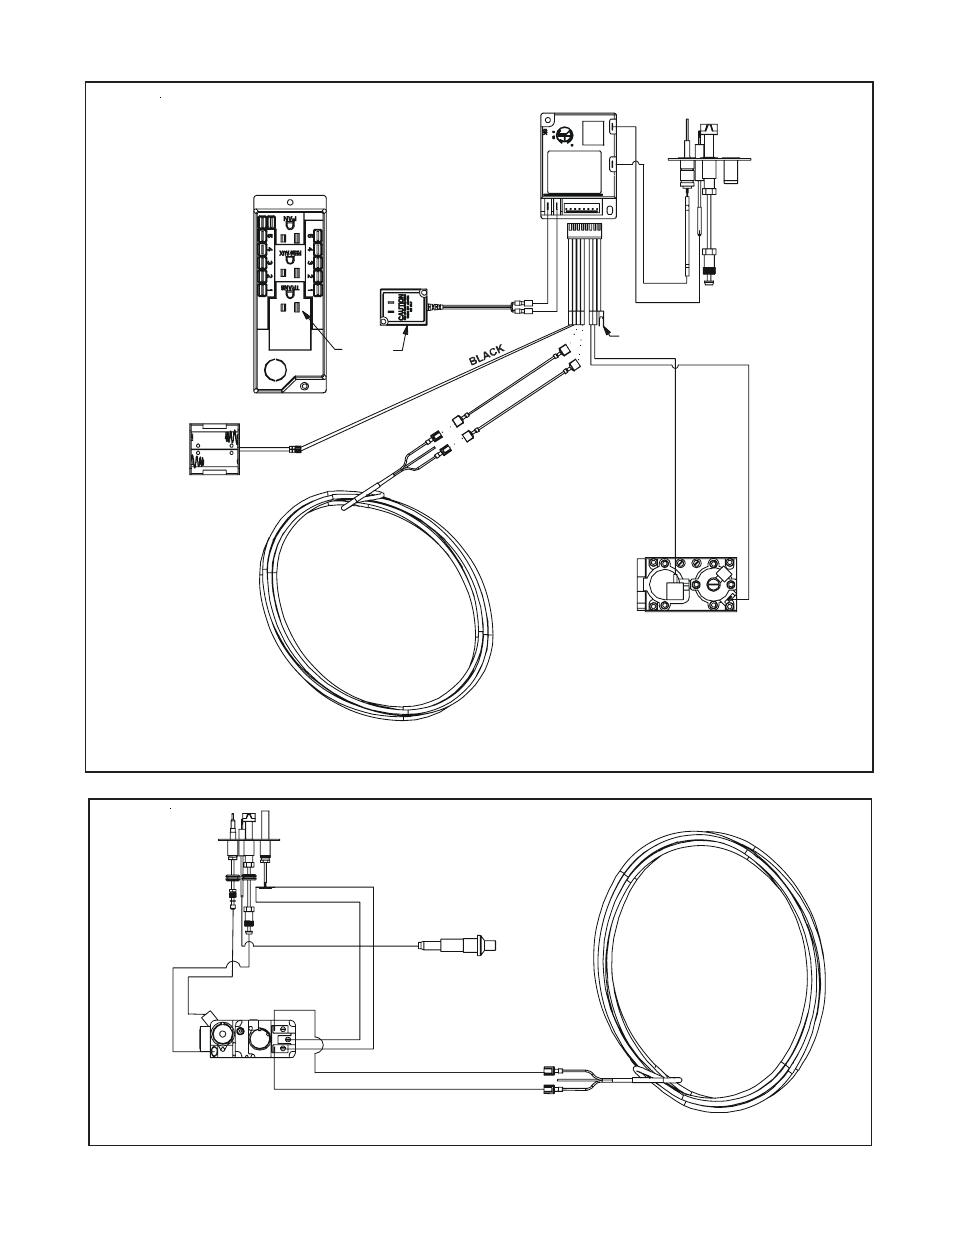 figure 8  standing pilot ignition wiring diagram